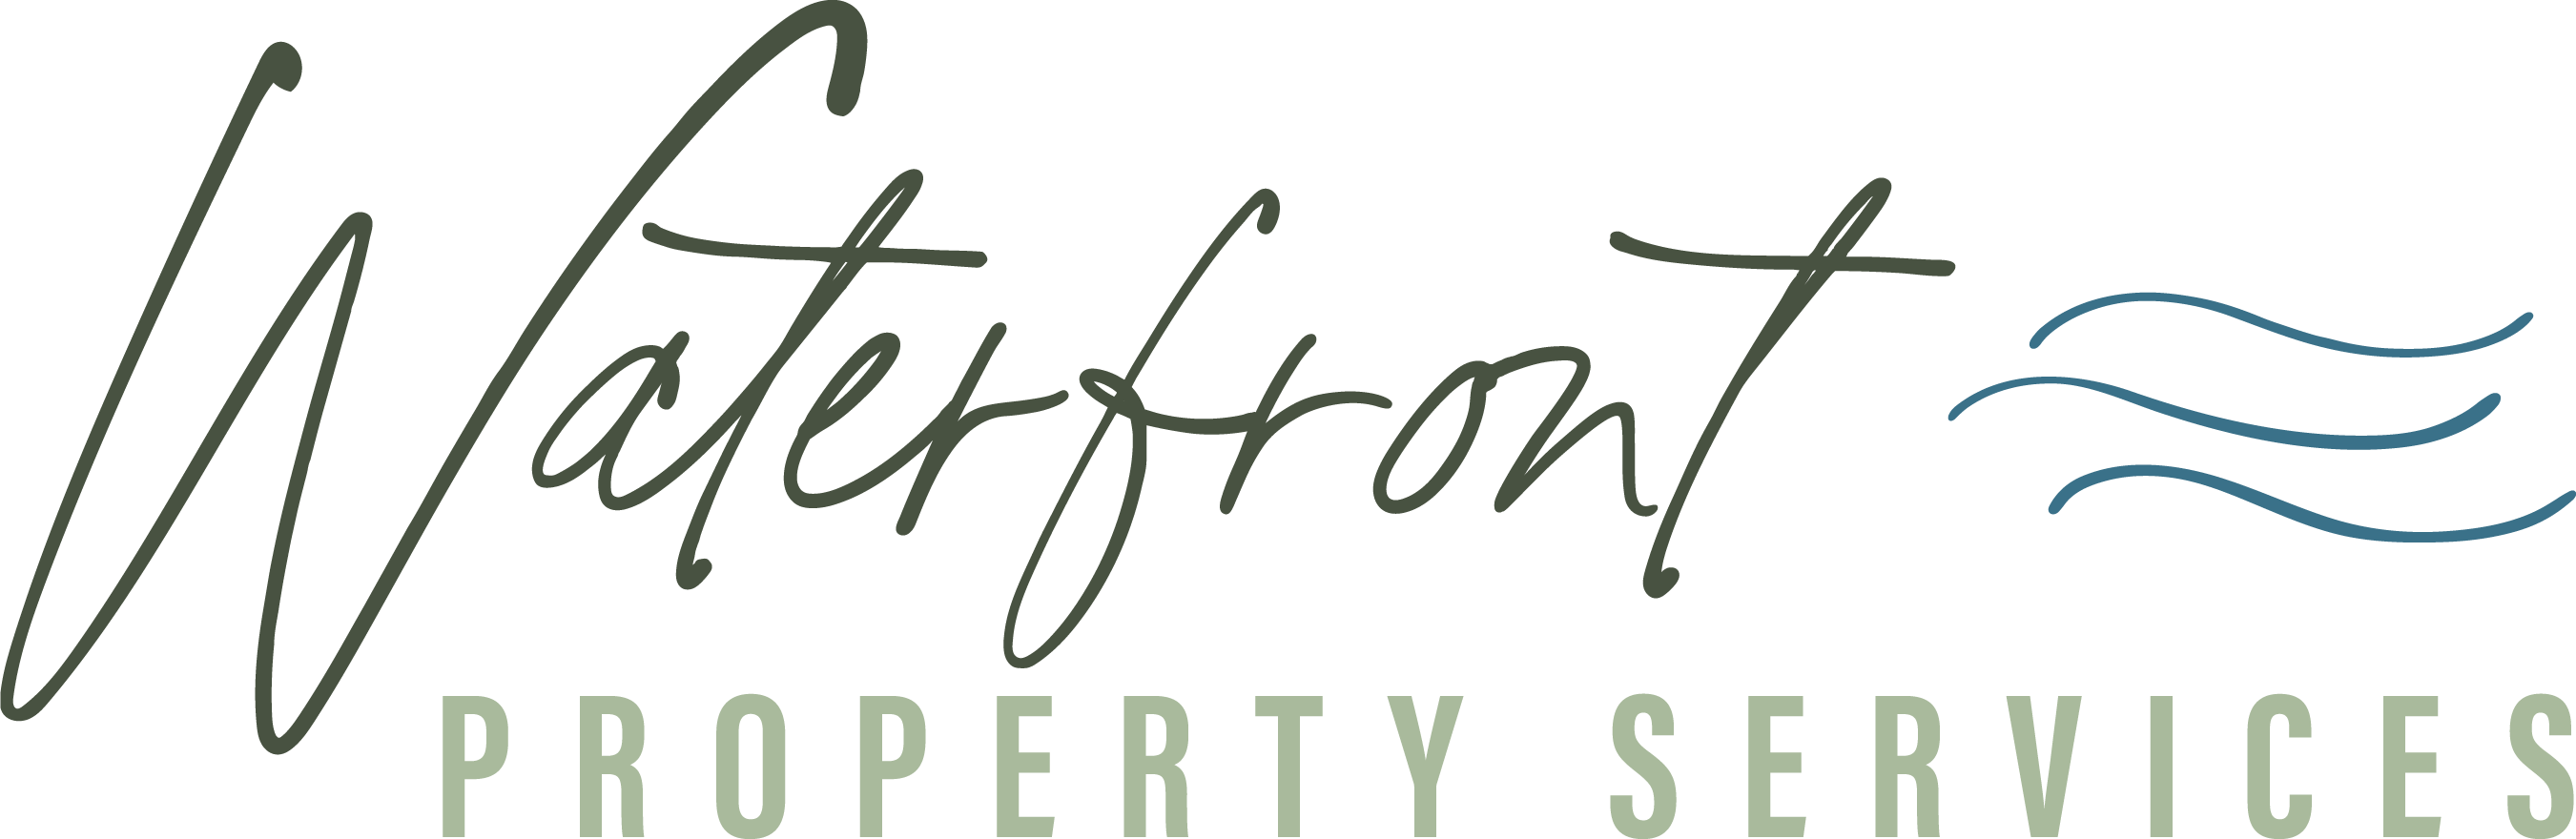 Waterfront Property Services